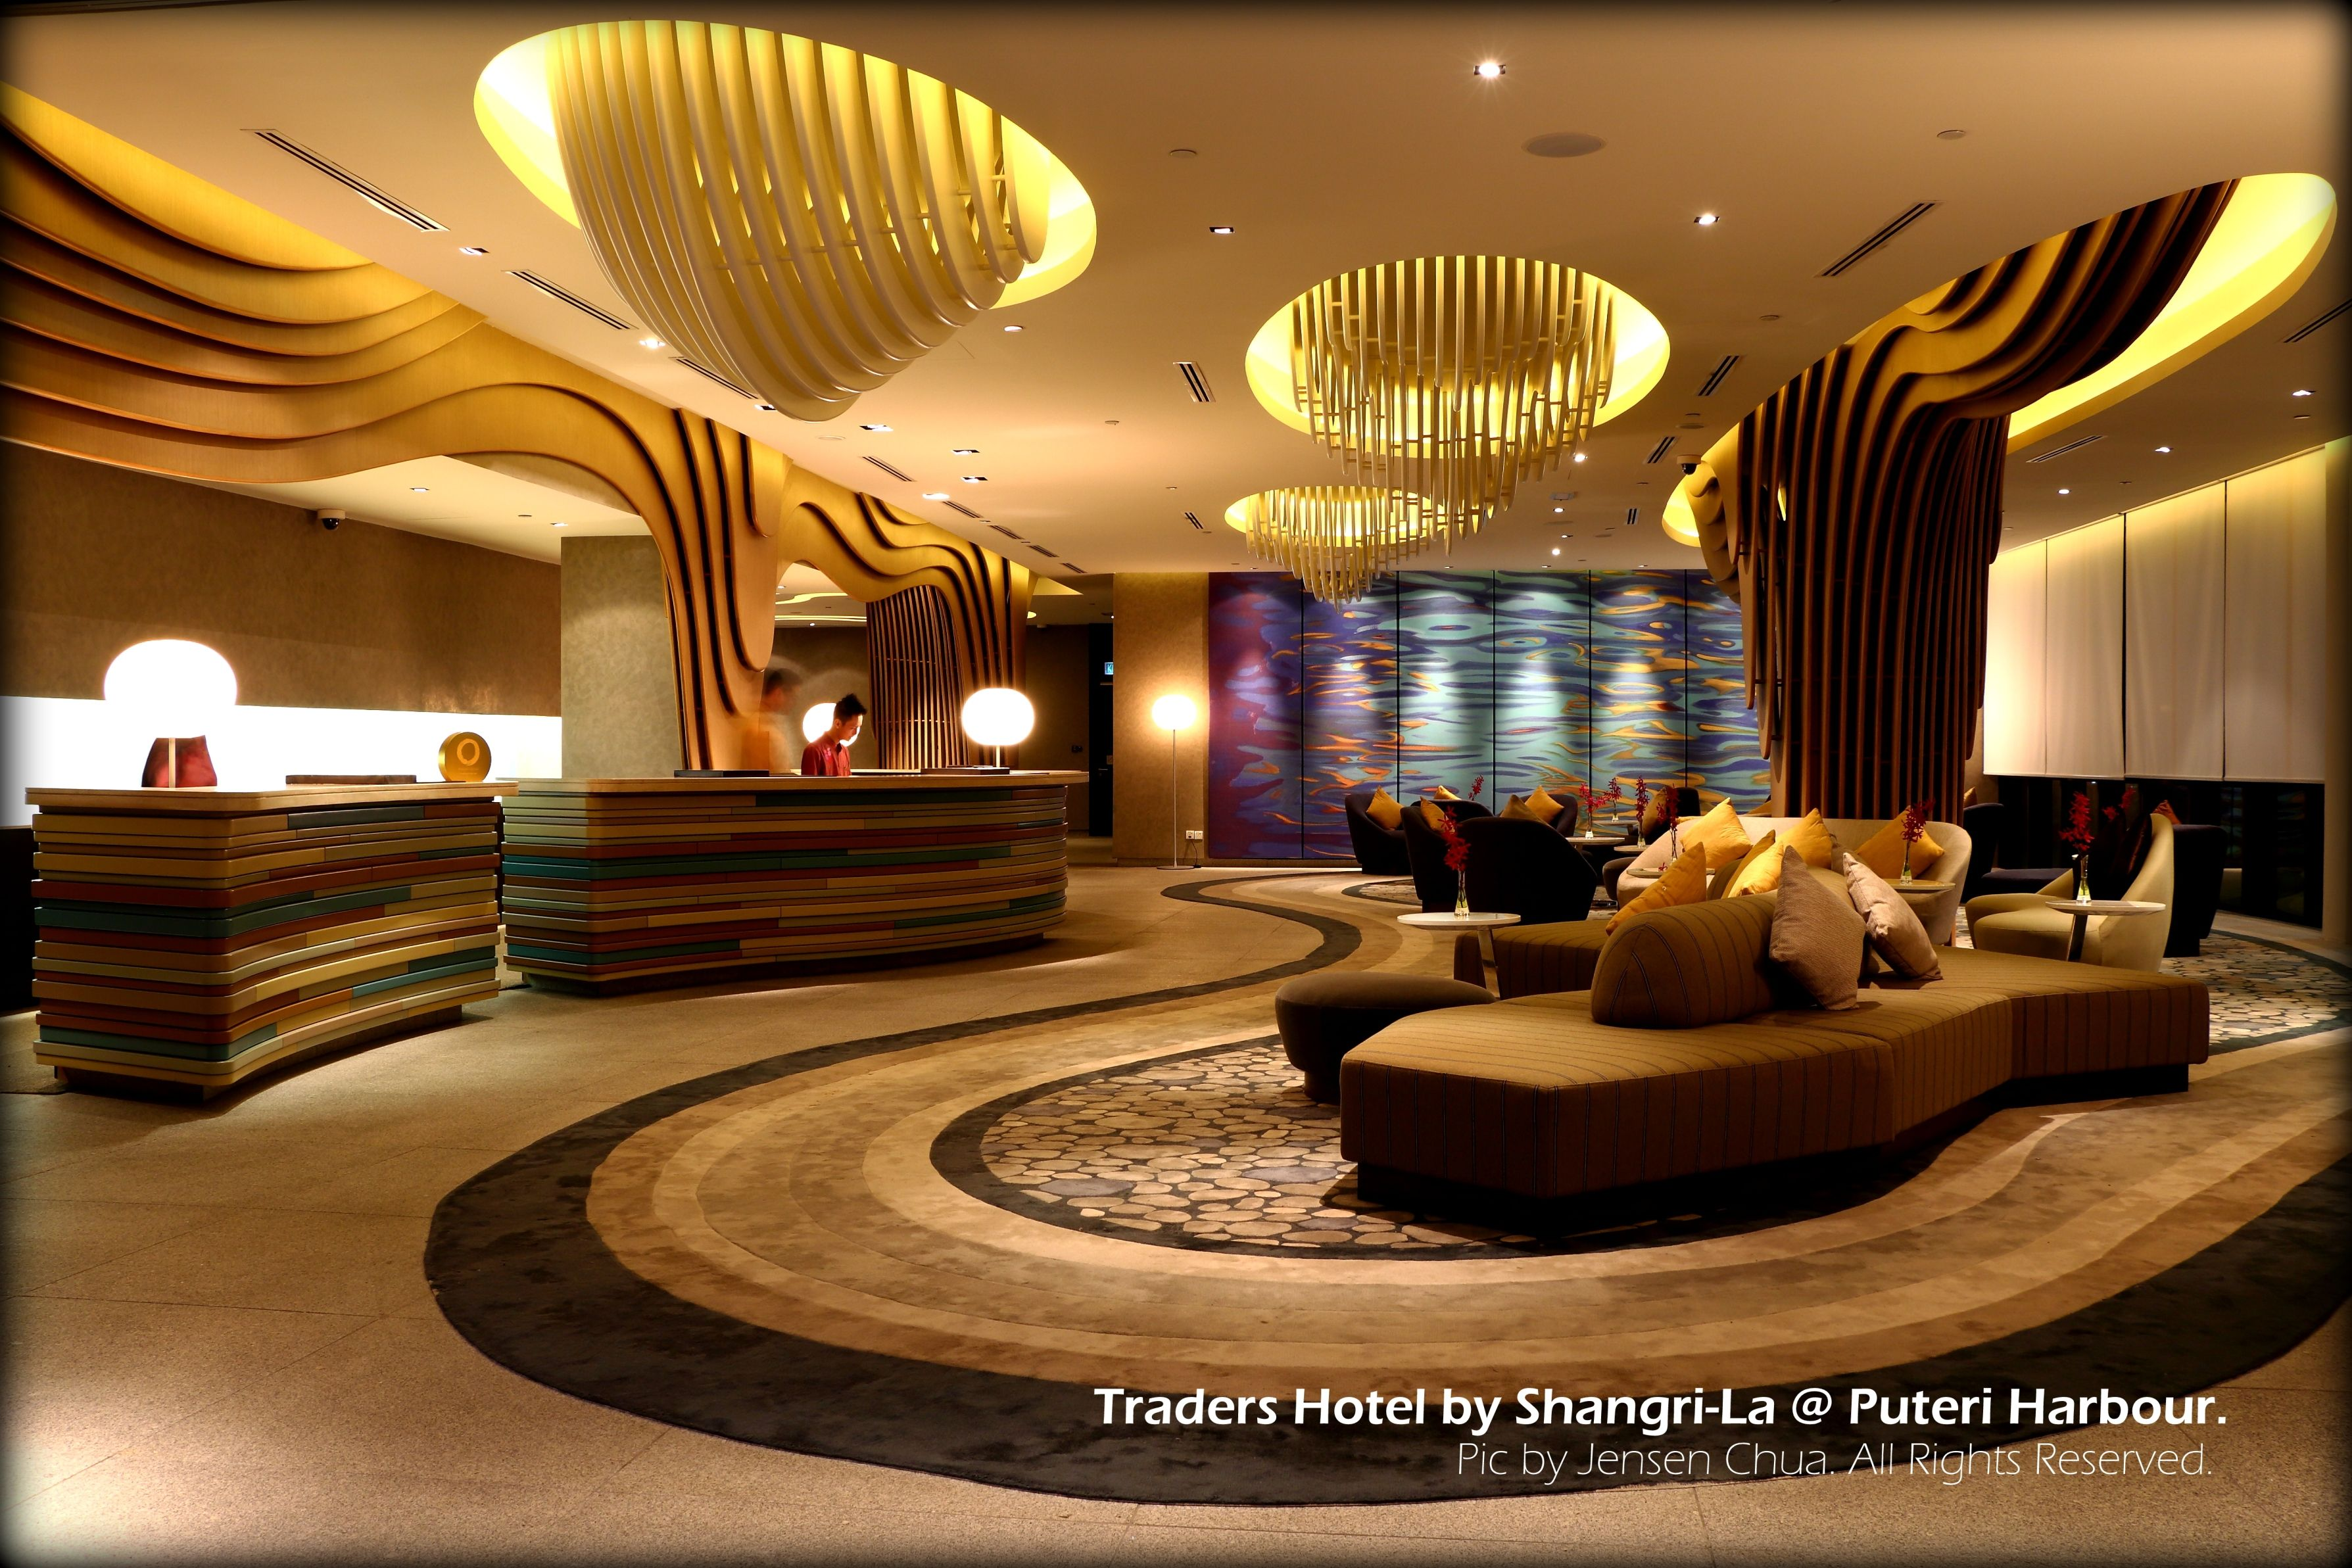 Superb Hotels Lobby Interior Design In Round Shape Google Search Largest Home Design Picture Inspirations Pitcheantrous